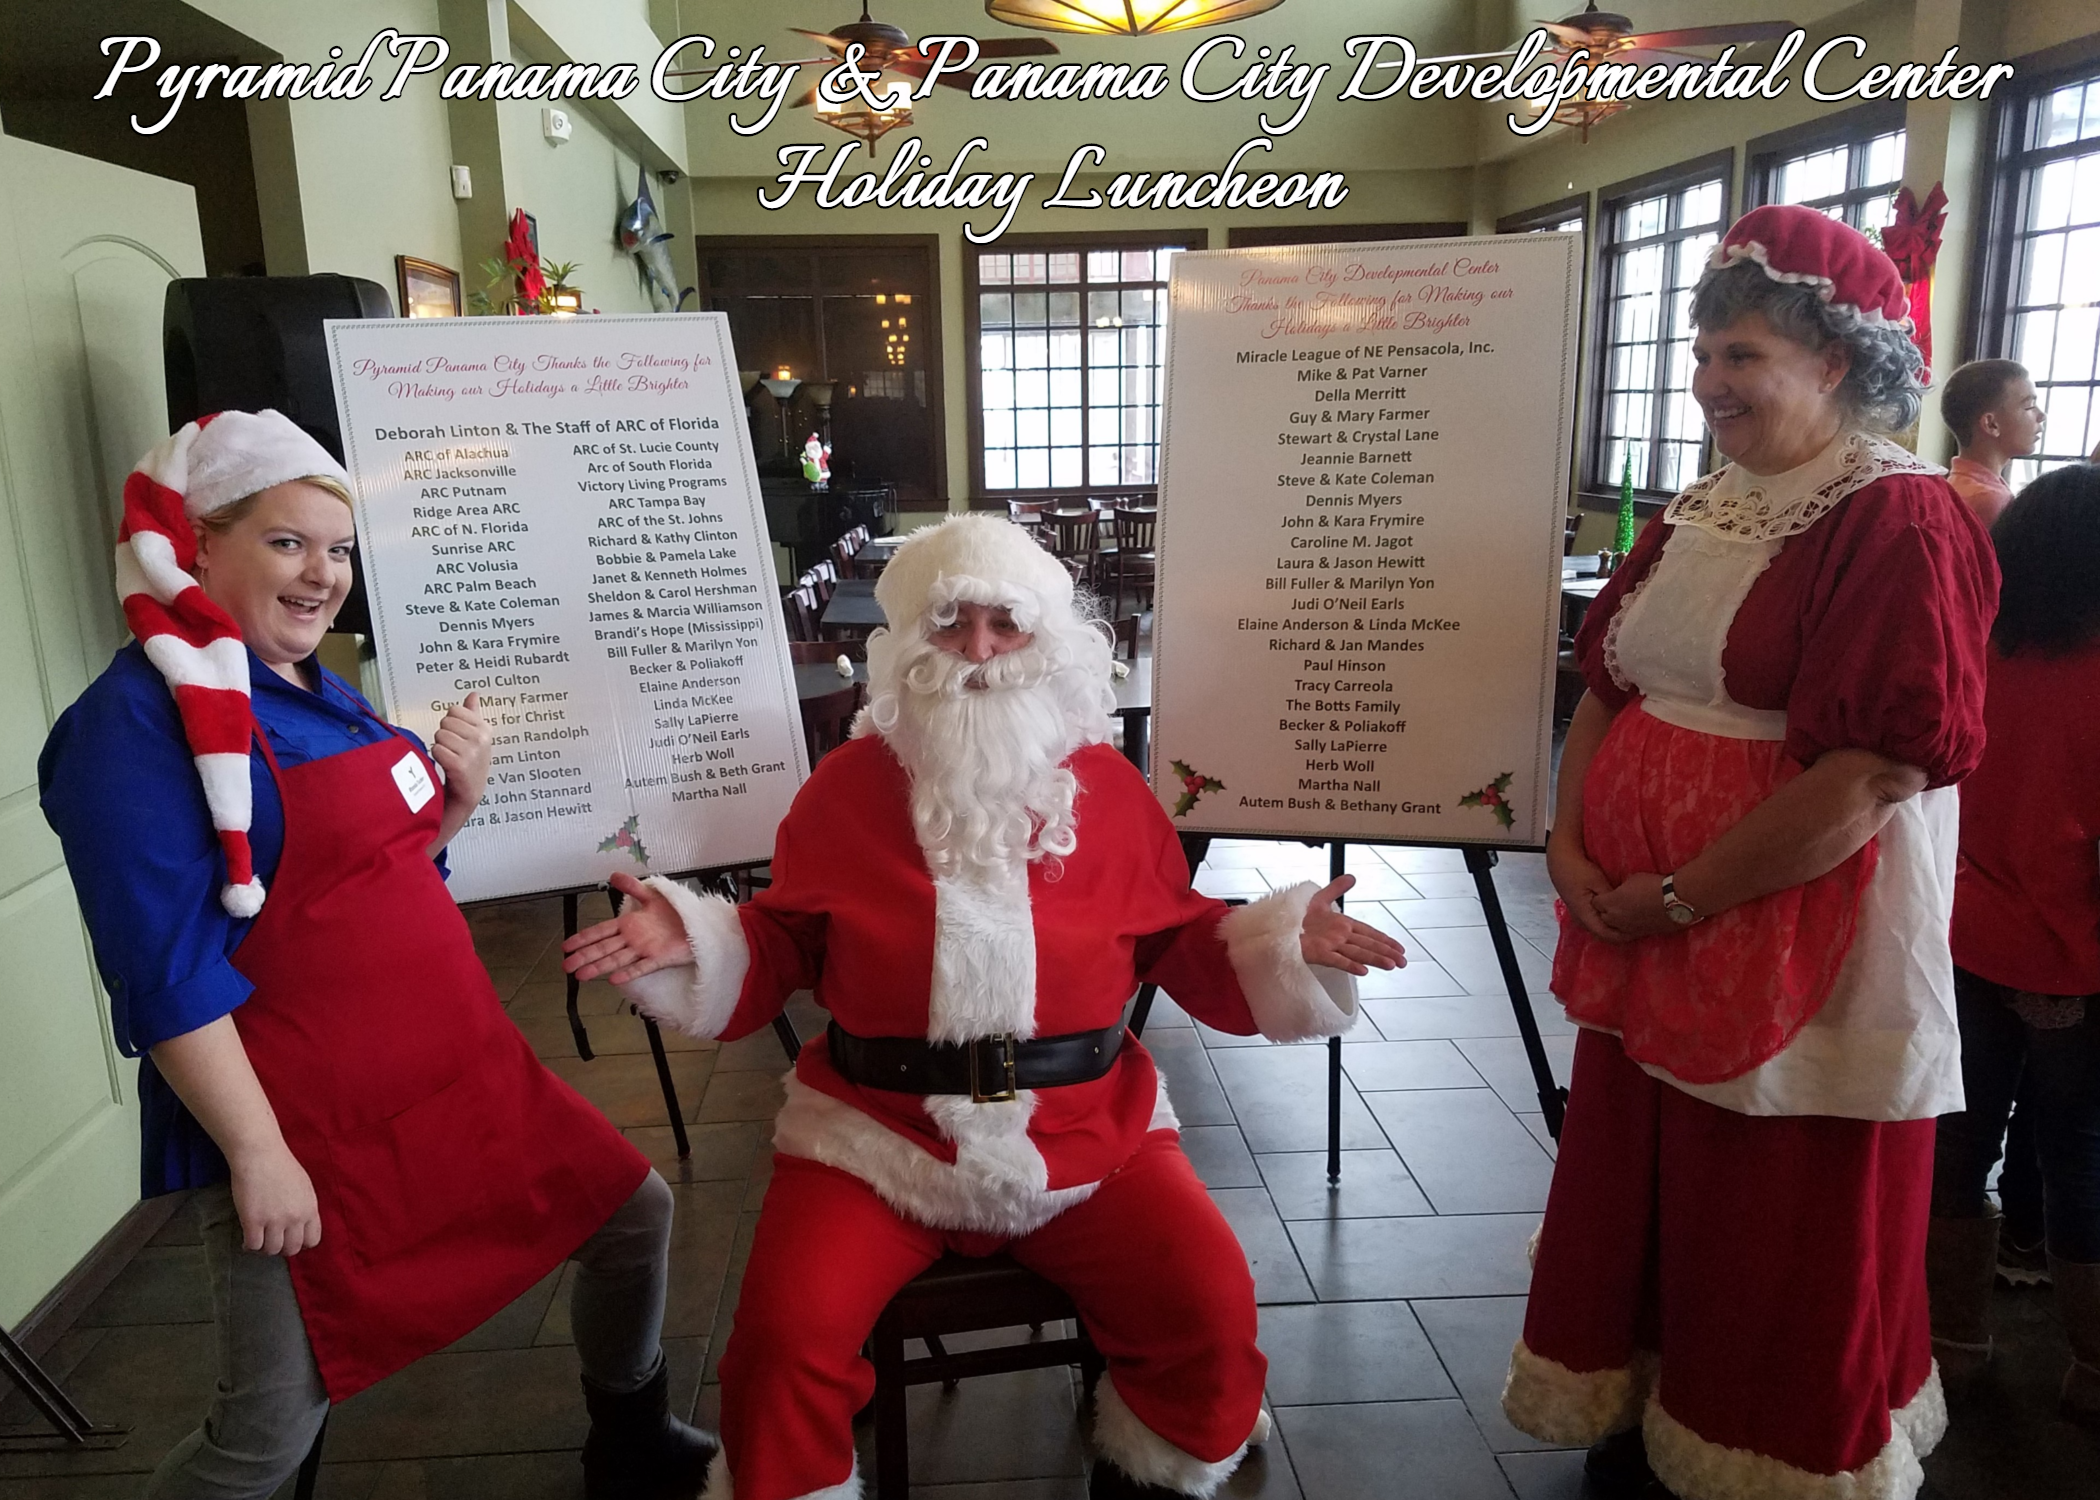 Photo of Pyramid & PCDC Holiday Luncheon